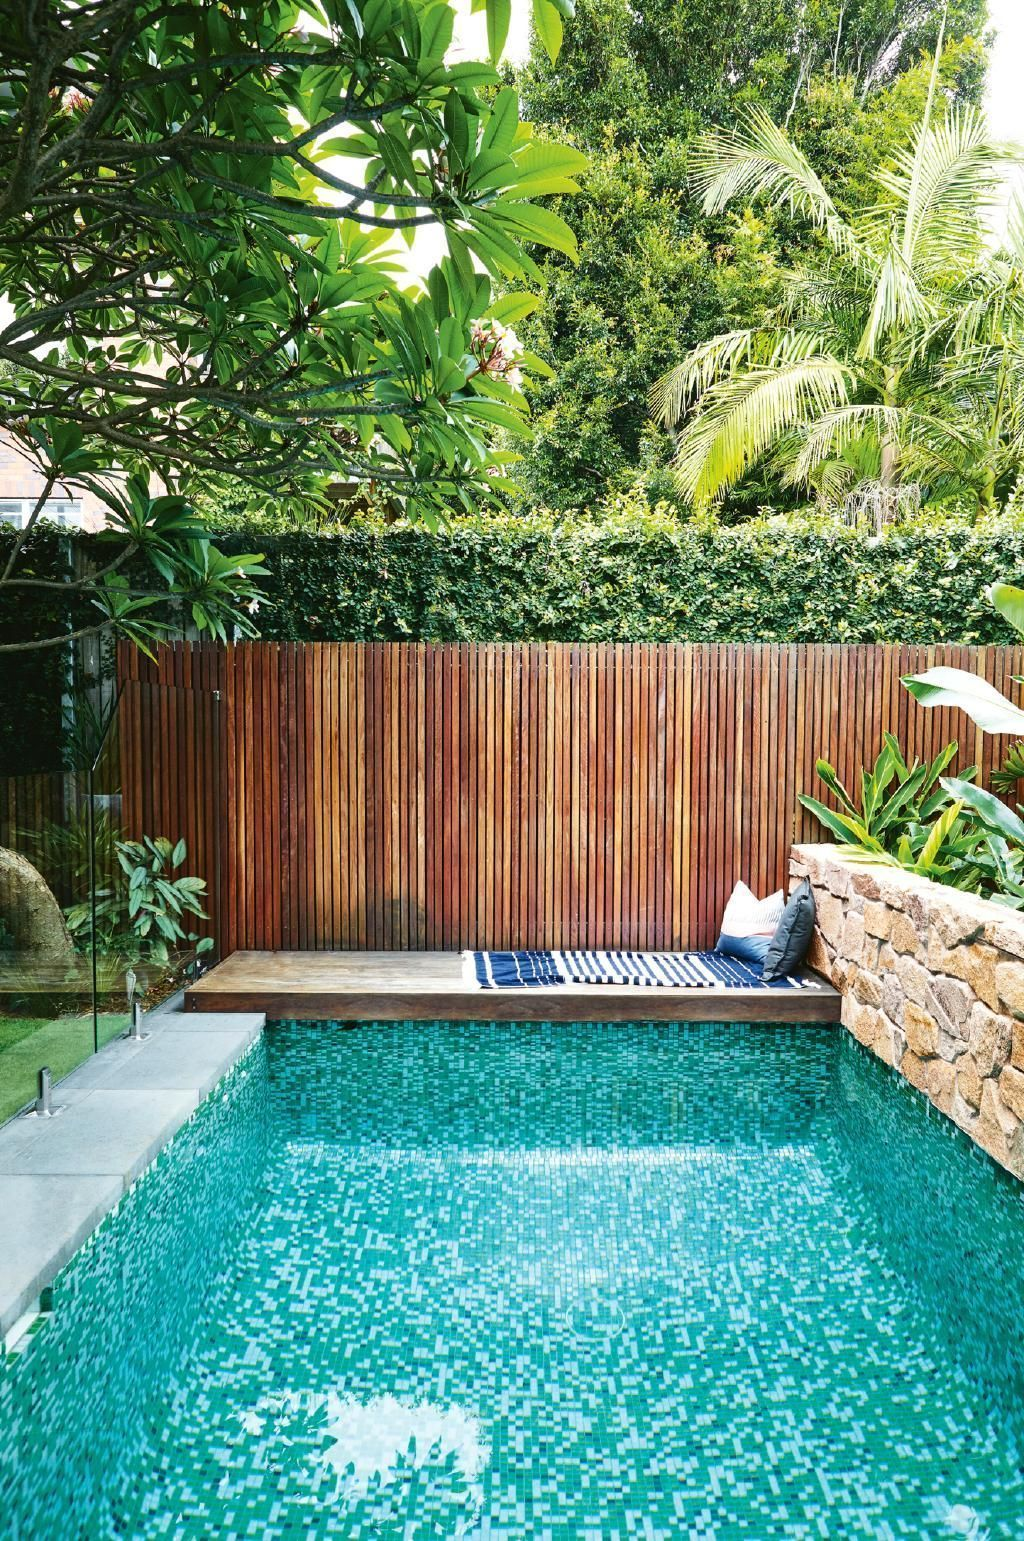 40 Fabulous Swimming Pool Design Ideas For Your Home Backyard